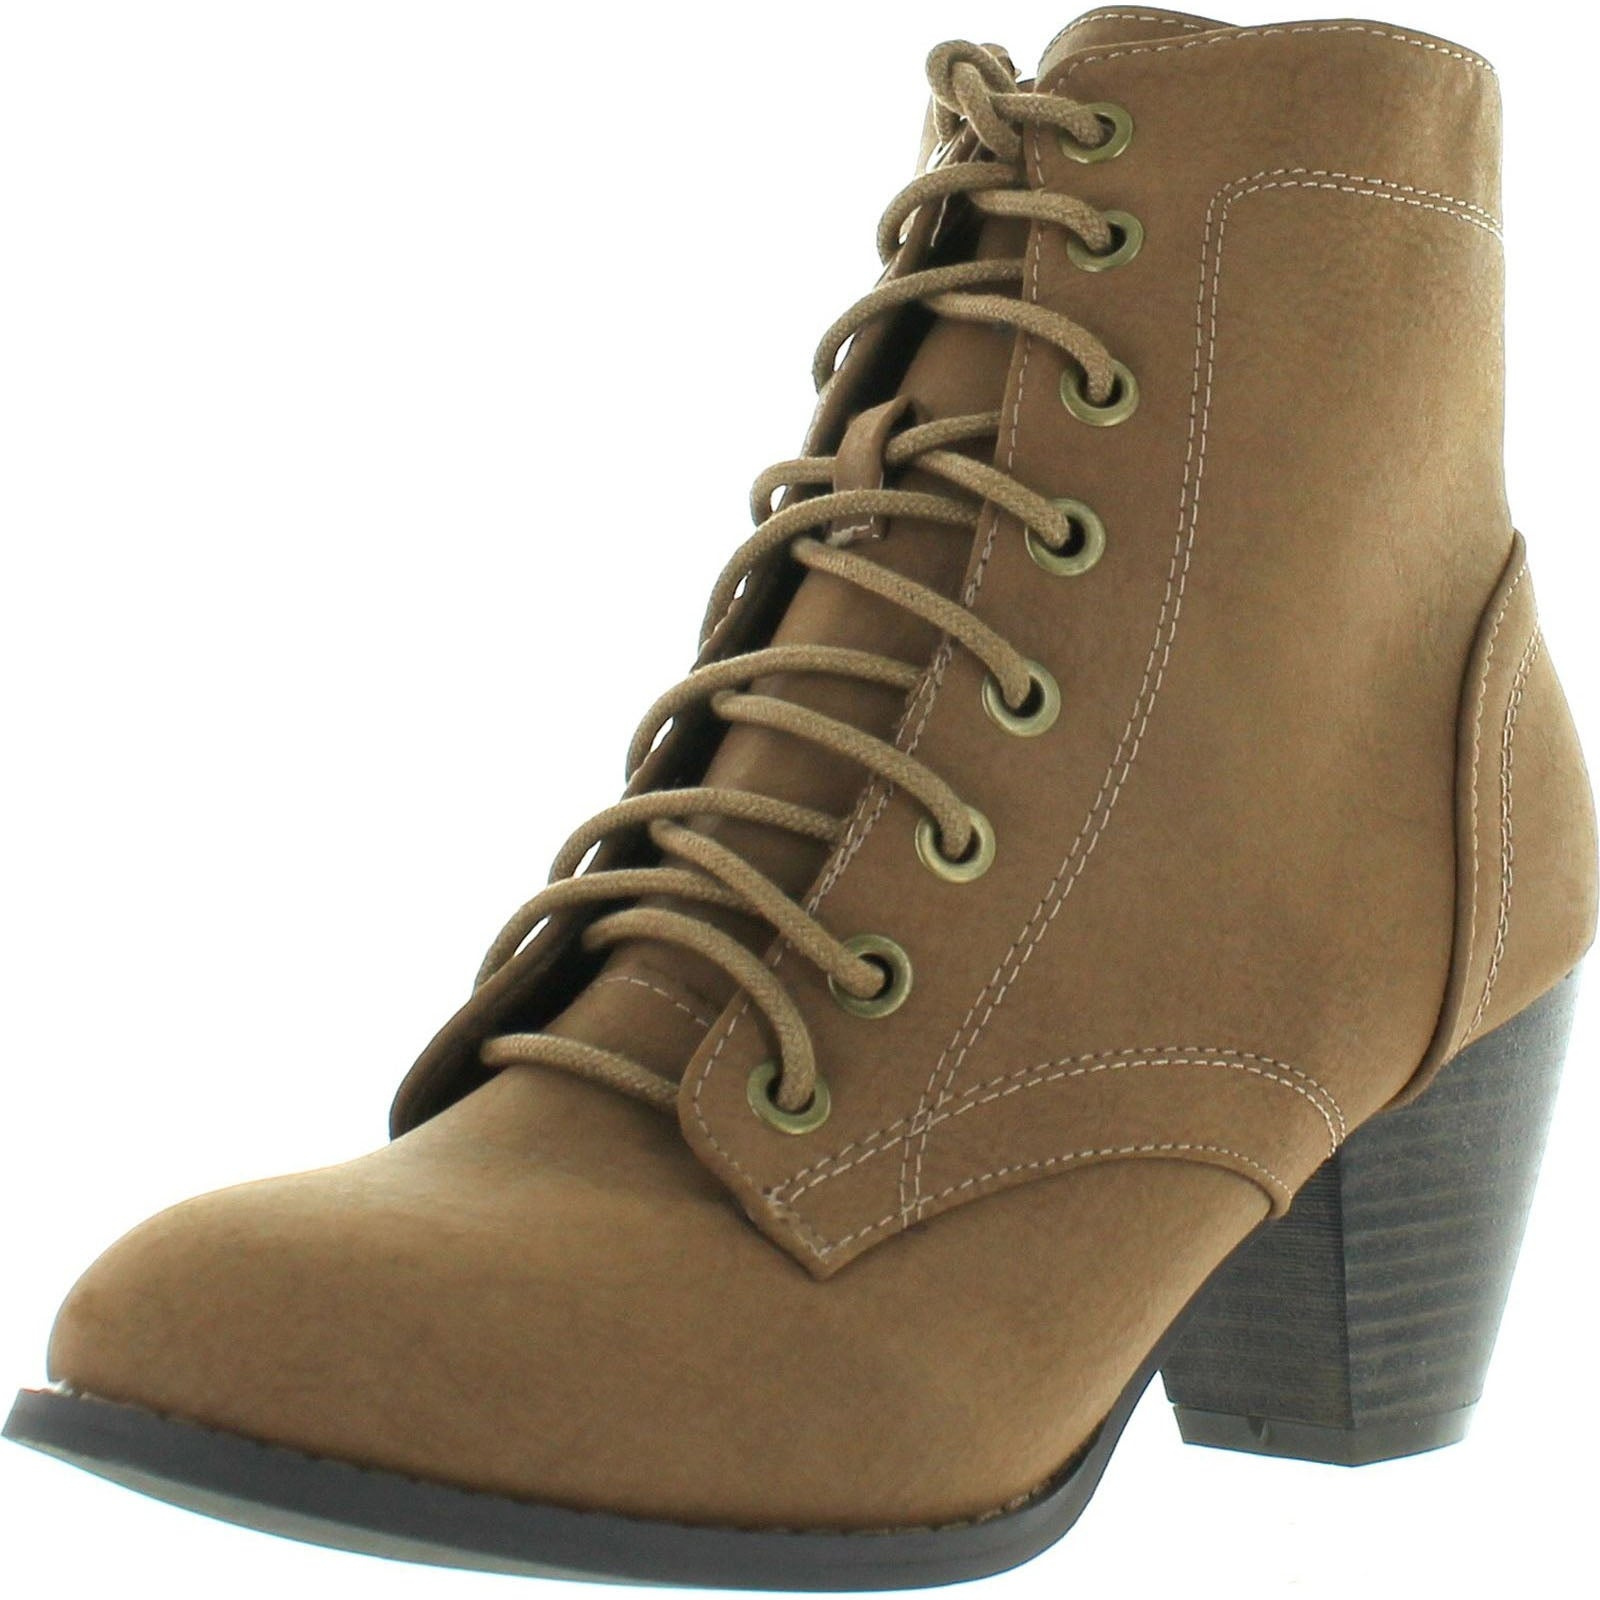 56f8459f2 Buy Top Moda Women's Boots Online at Overstock | Our Best Women's Shoes  Deals